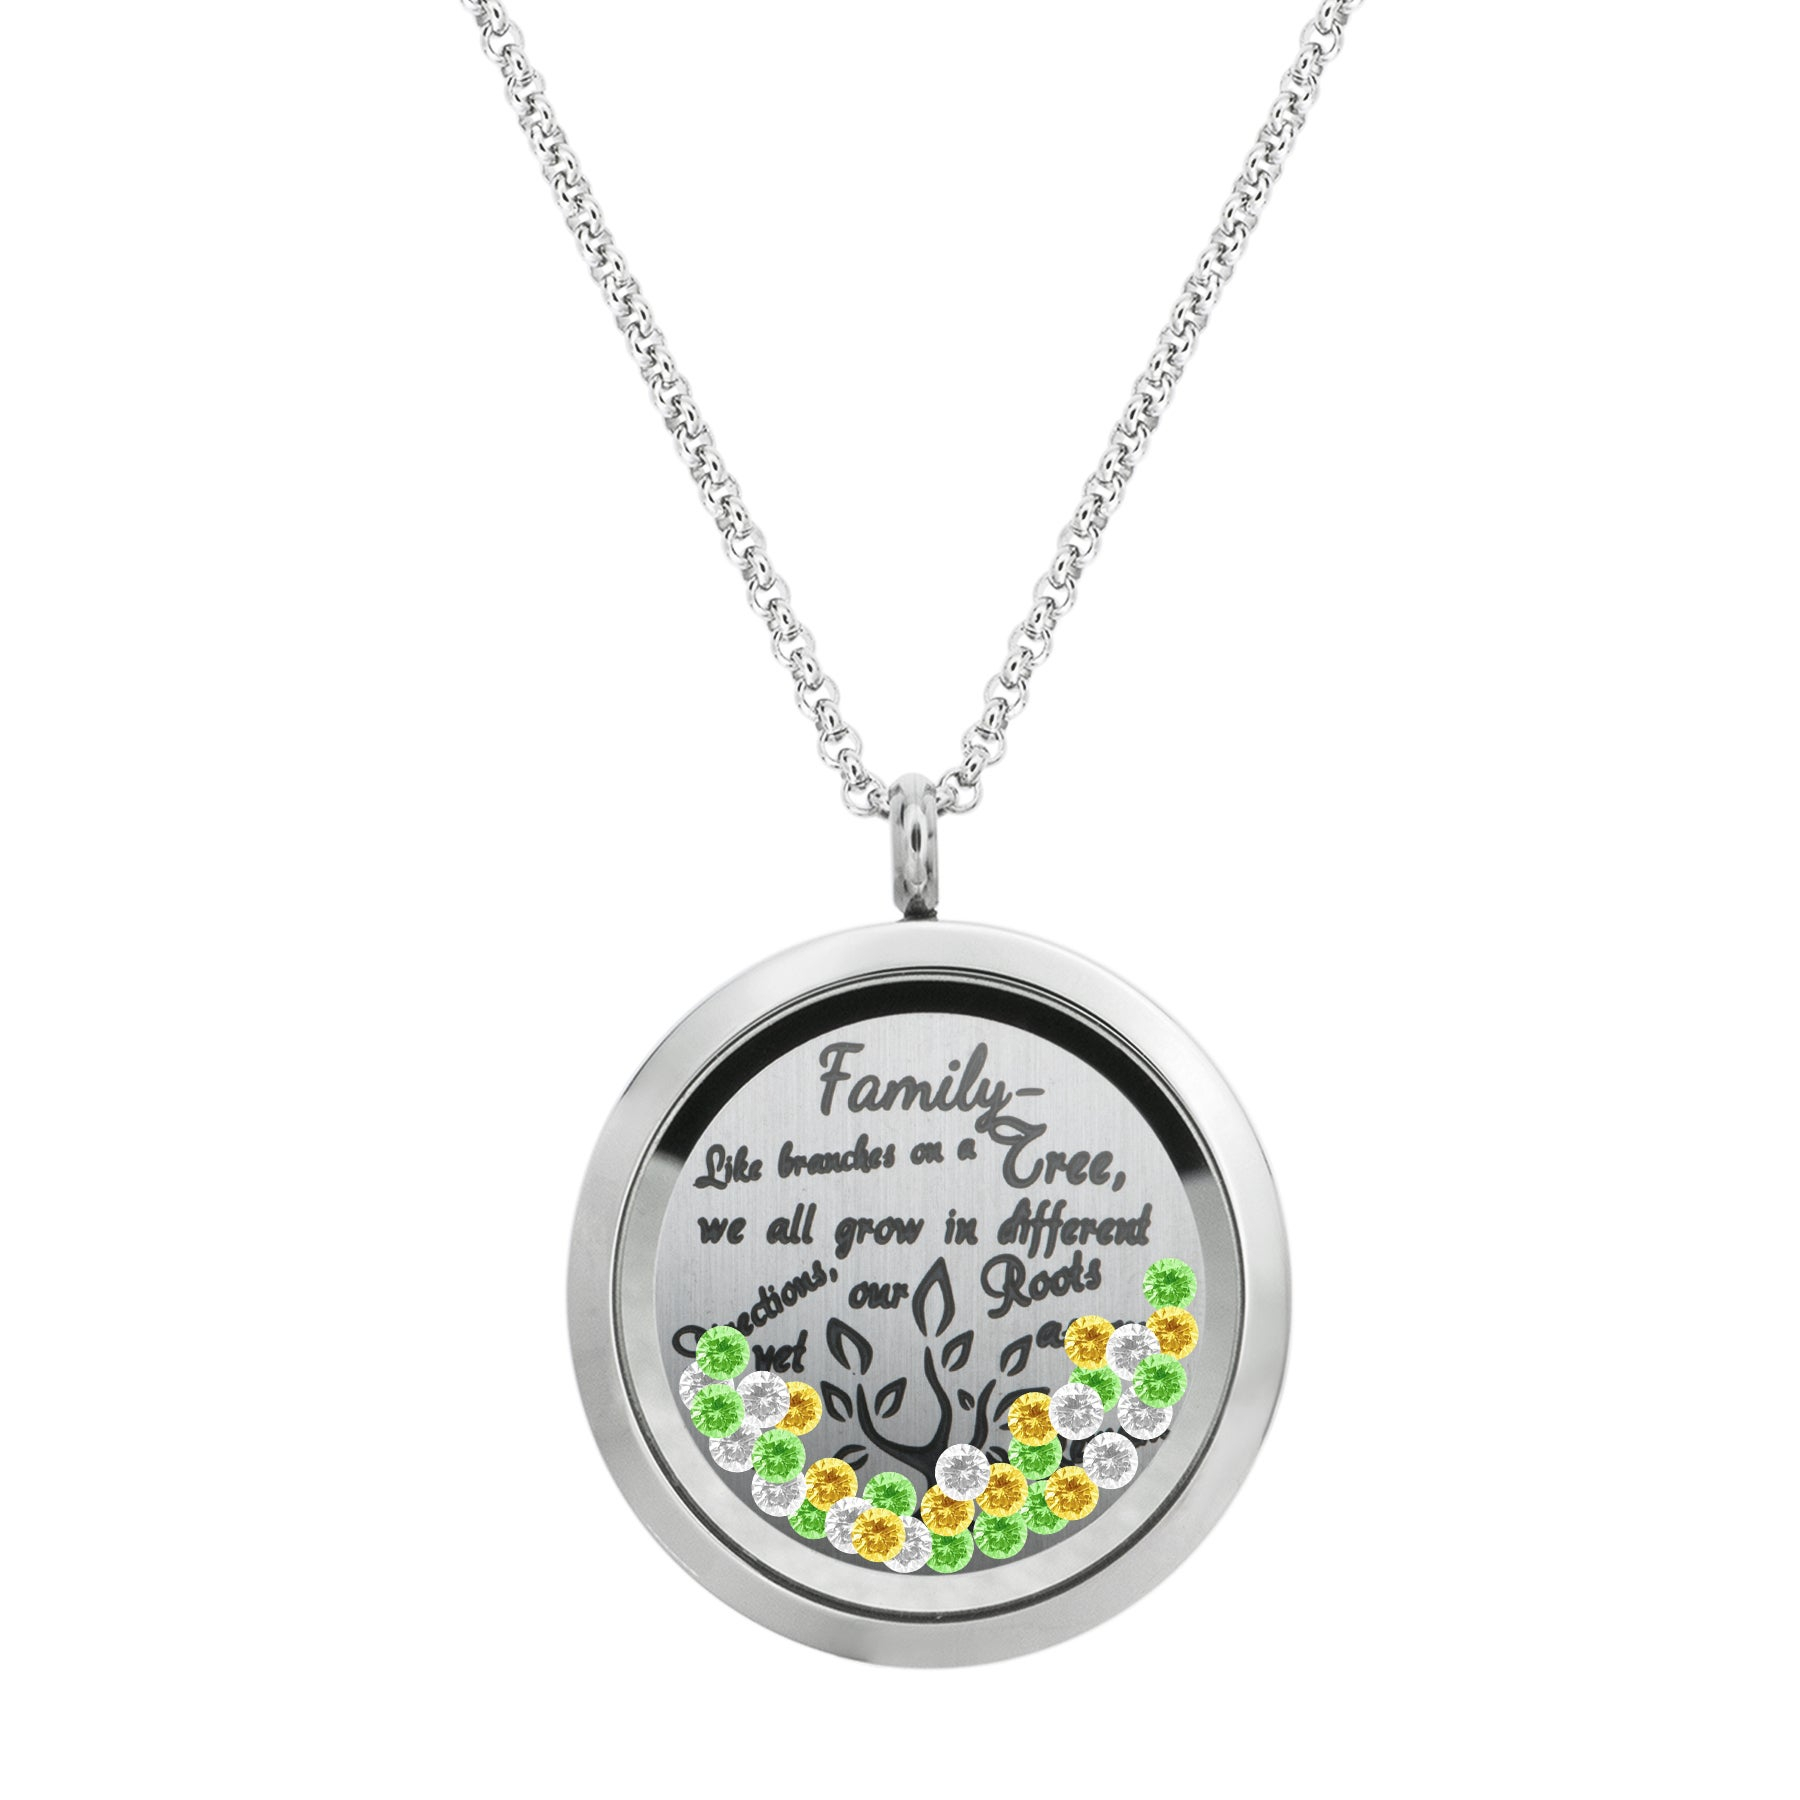 Queenberry Family Tree Love Heart Round Floating Locket Crystals Charm Necklace Pendant Within Most Recently Released Love & Family Petite Locket Charms Necklaces (View 15 of 25)